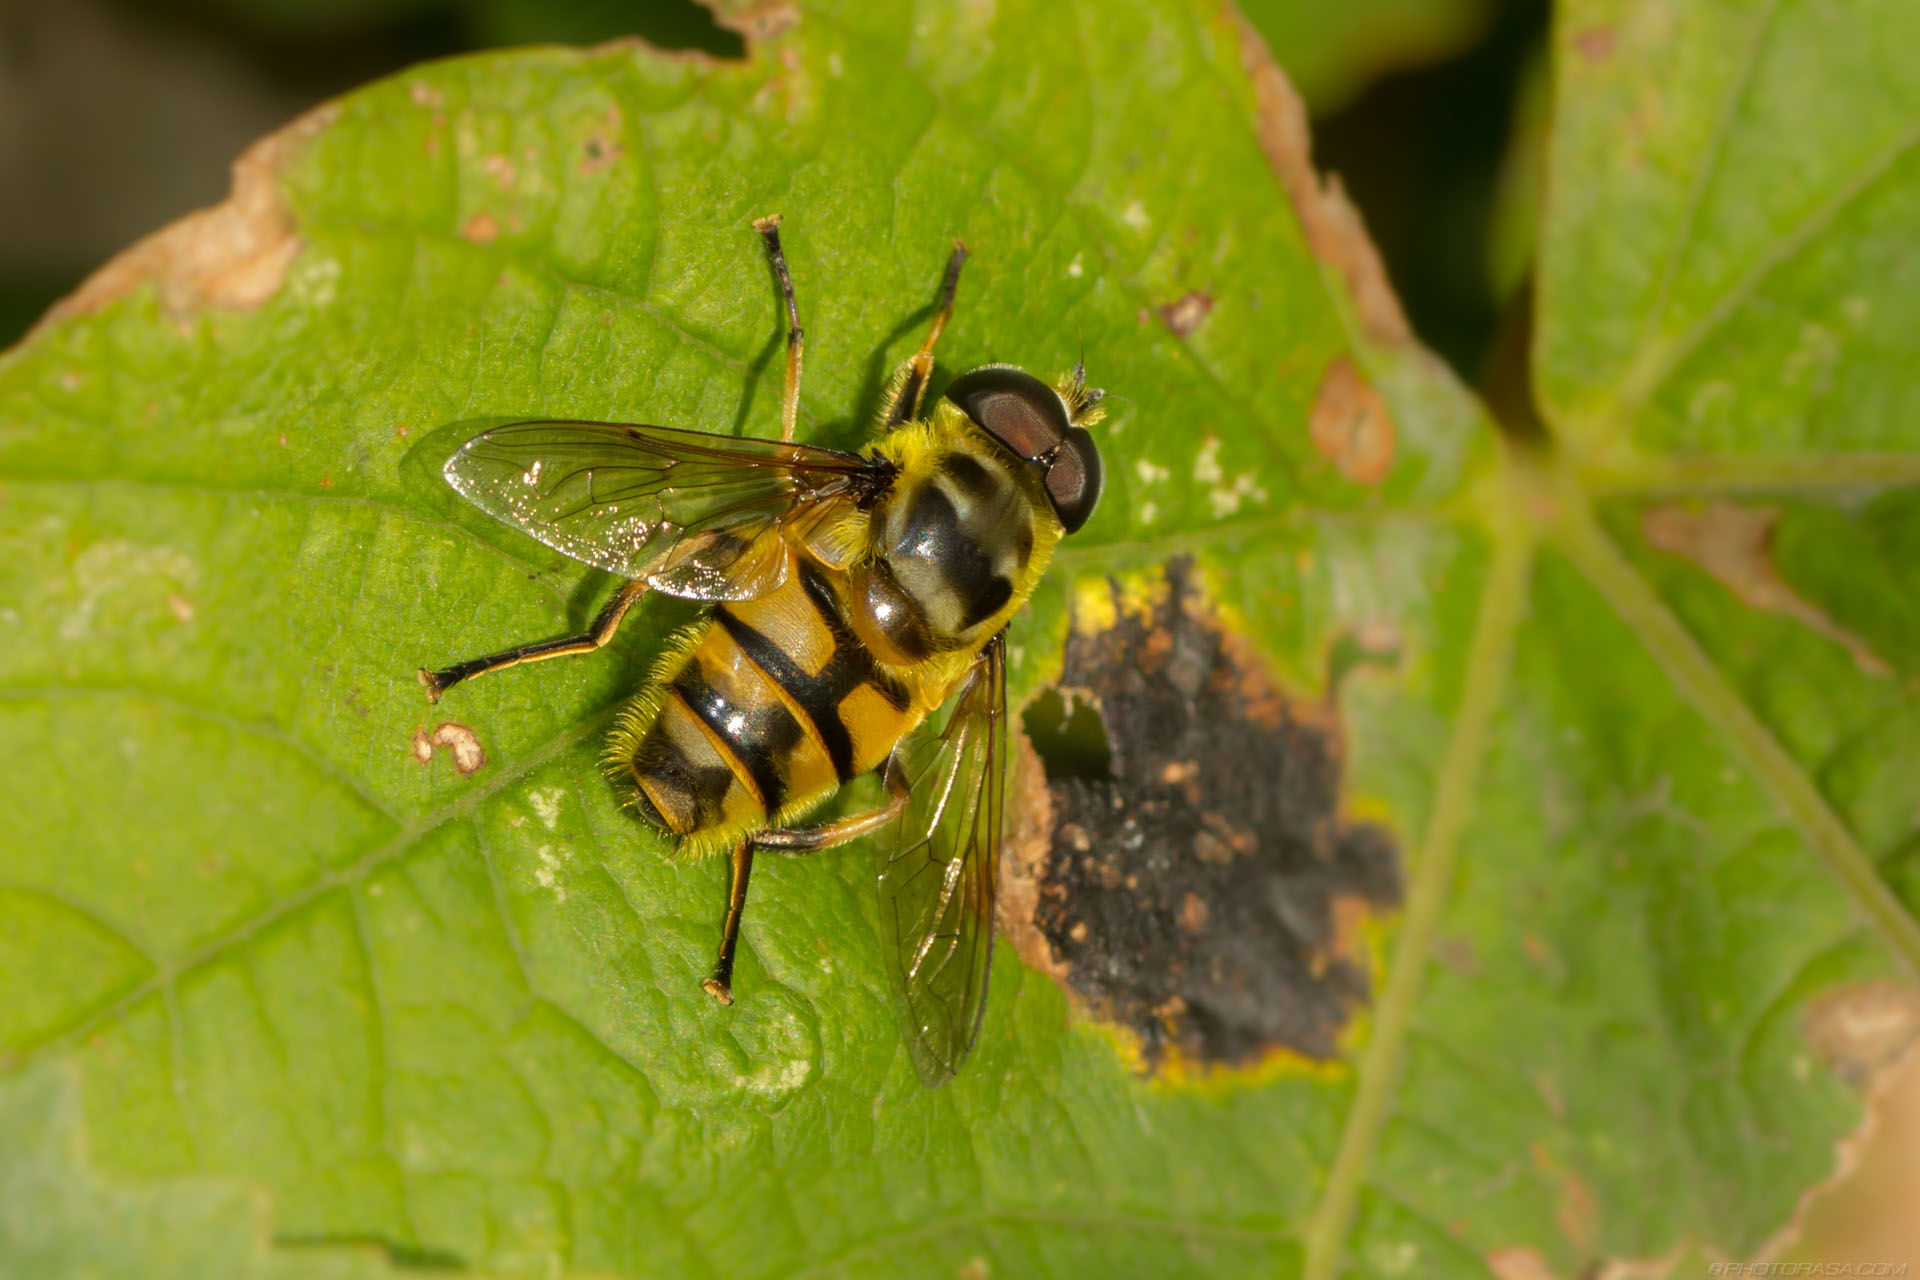 http://photorasa.com/animals/insects/hoverflies/attachment/myathropa-florea-hoverfly/